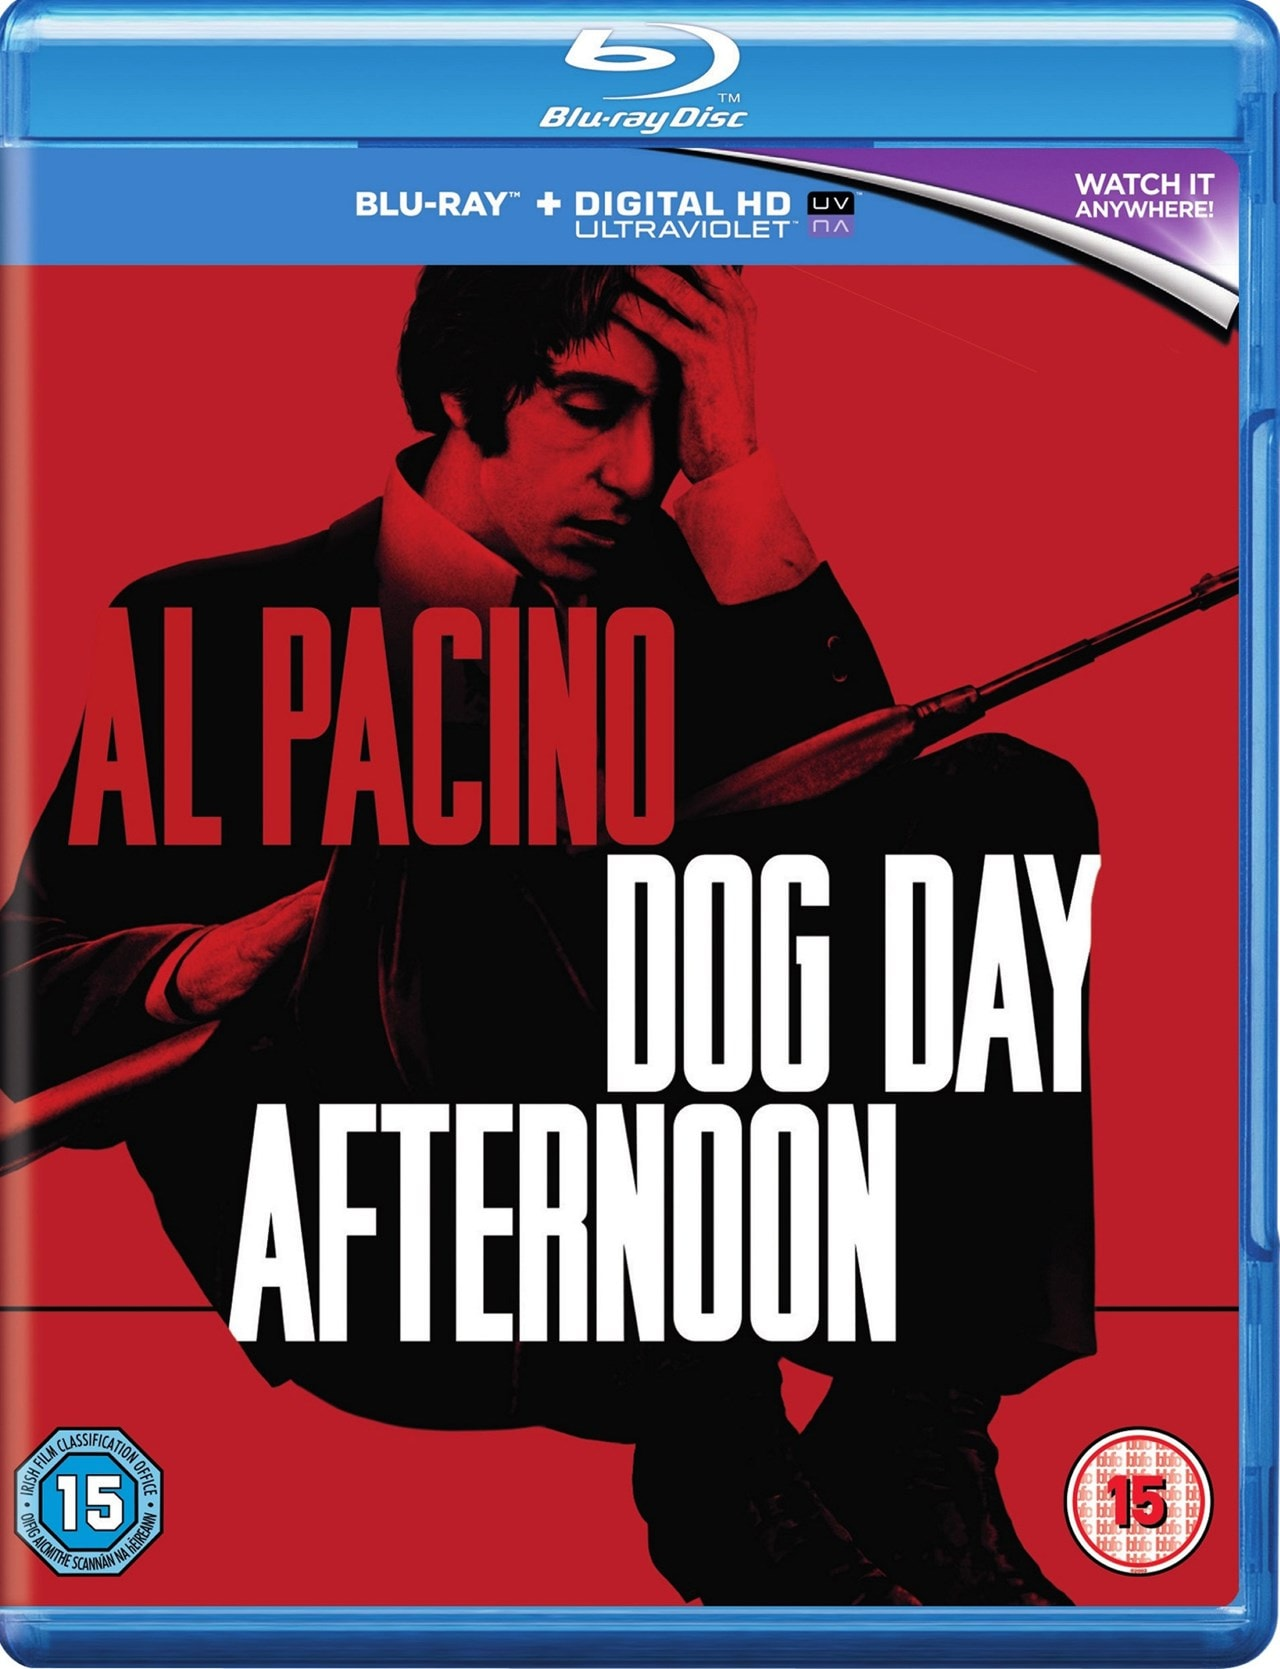 Dog Day Afternoon - 1